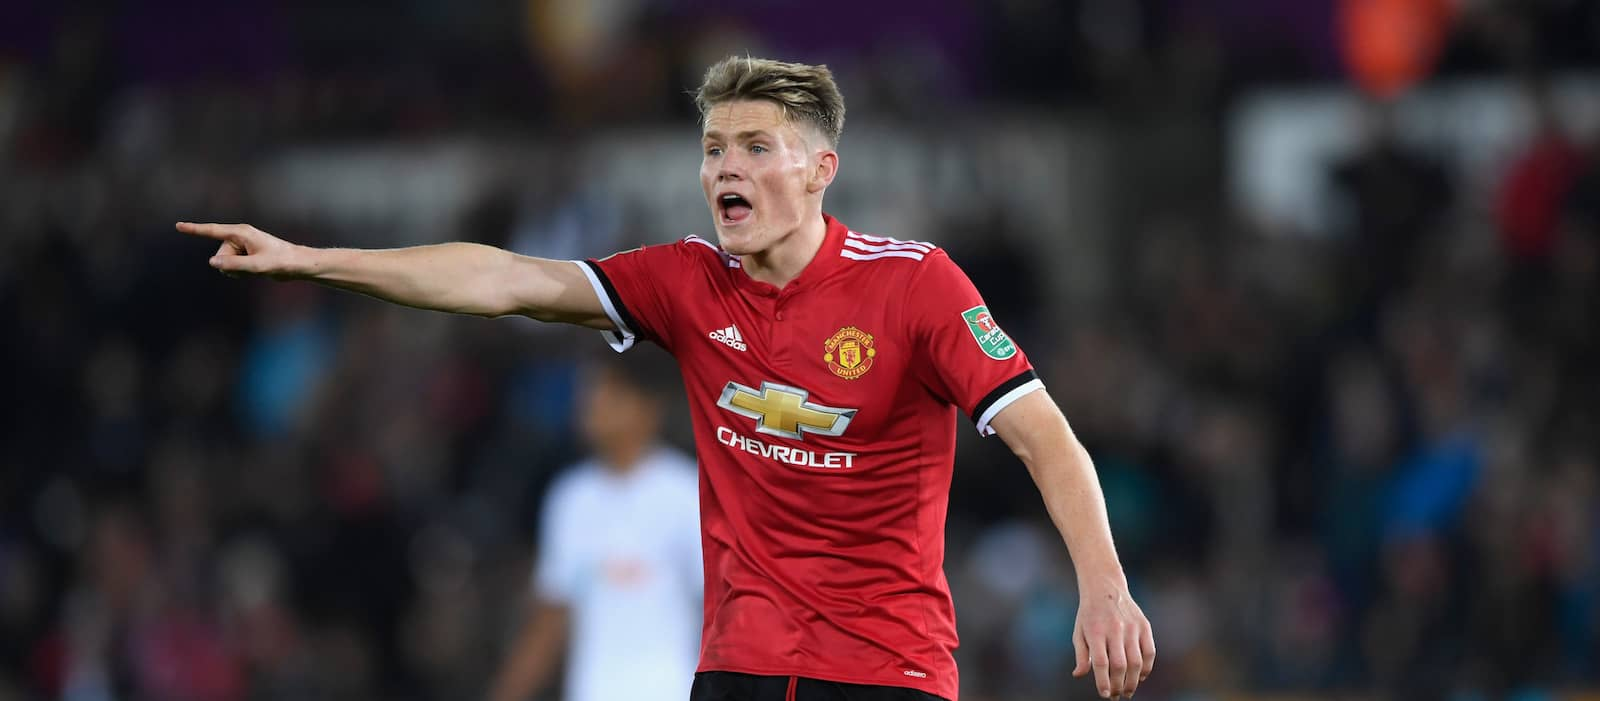 Manchester United fans pleased with Scott McTominay's performance vs Bournemouth